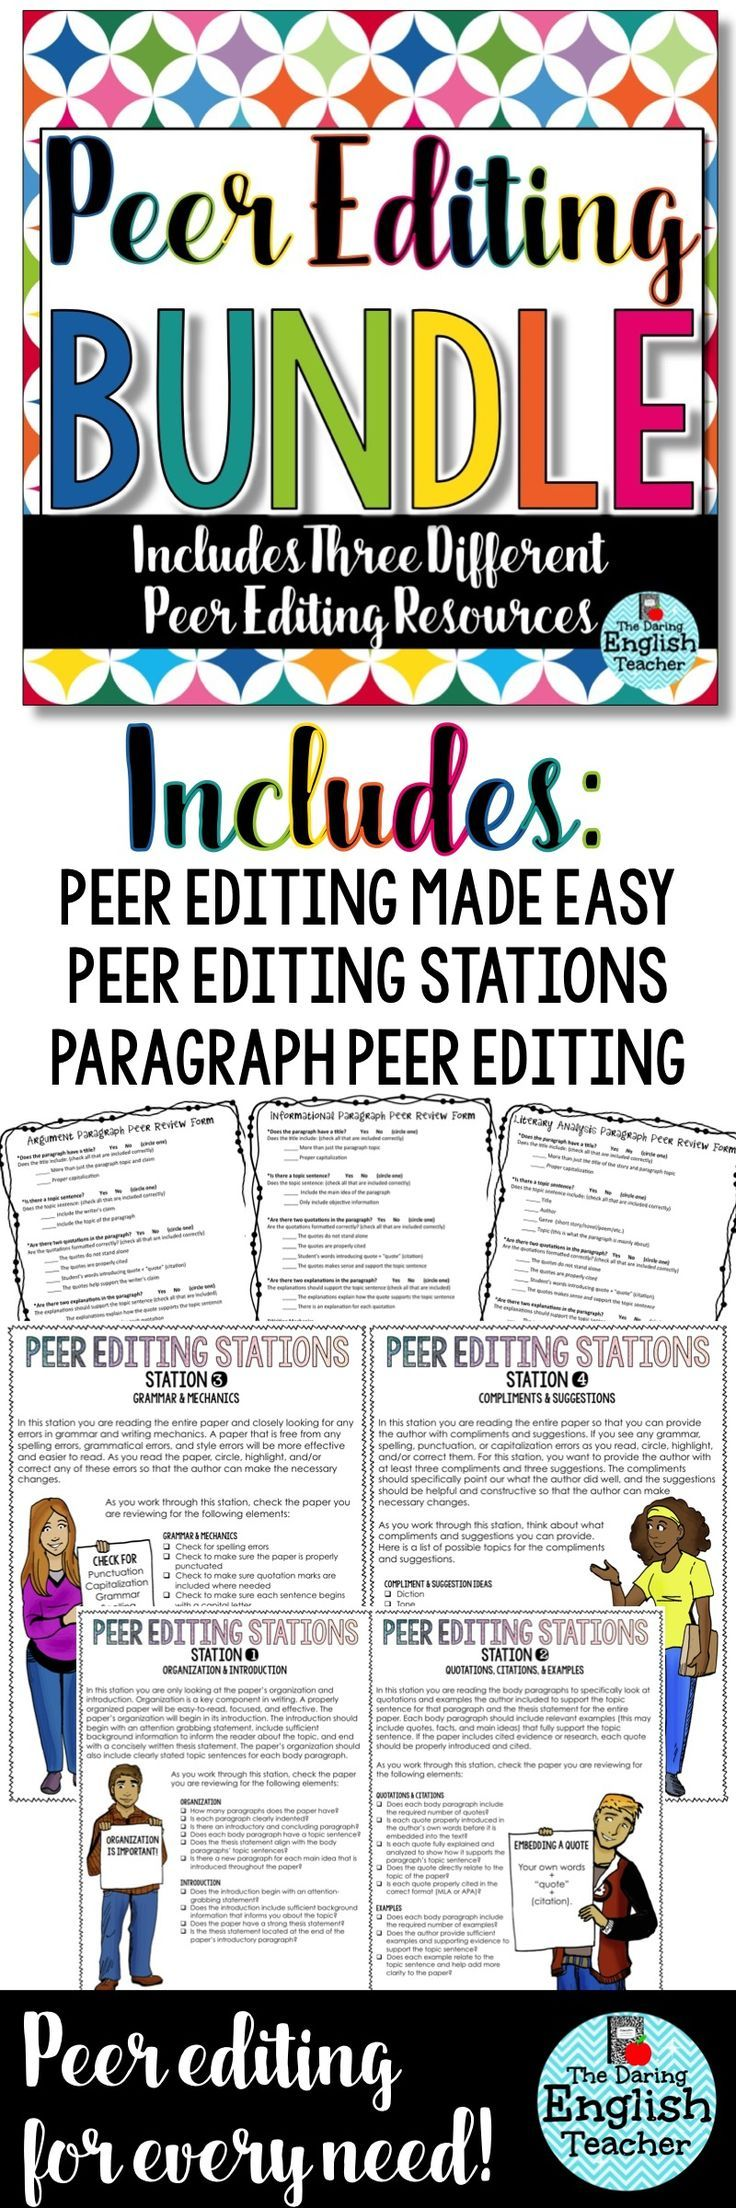 peer editing can be confusing high school and middle school peer editing can be confusing high school and middle school students need direction to effectively acircmiddot essay writingteaching